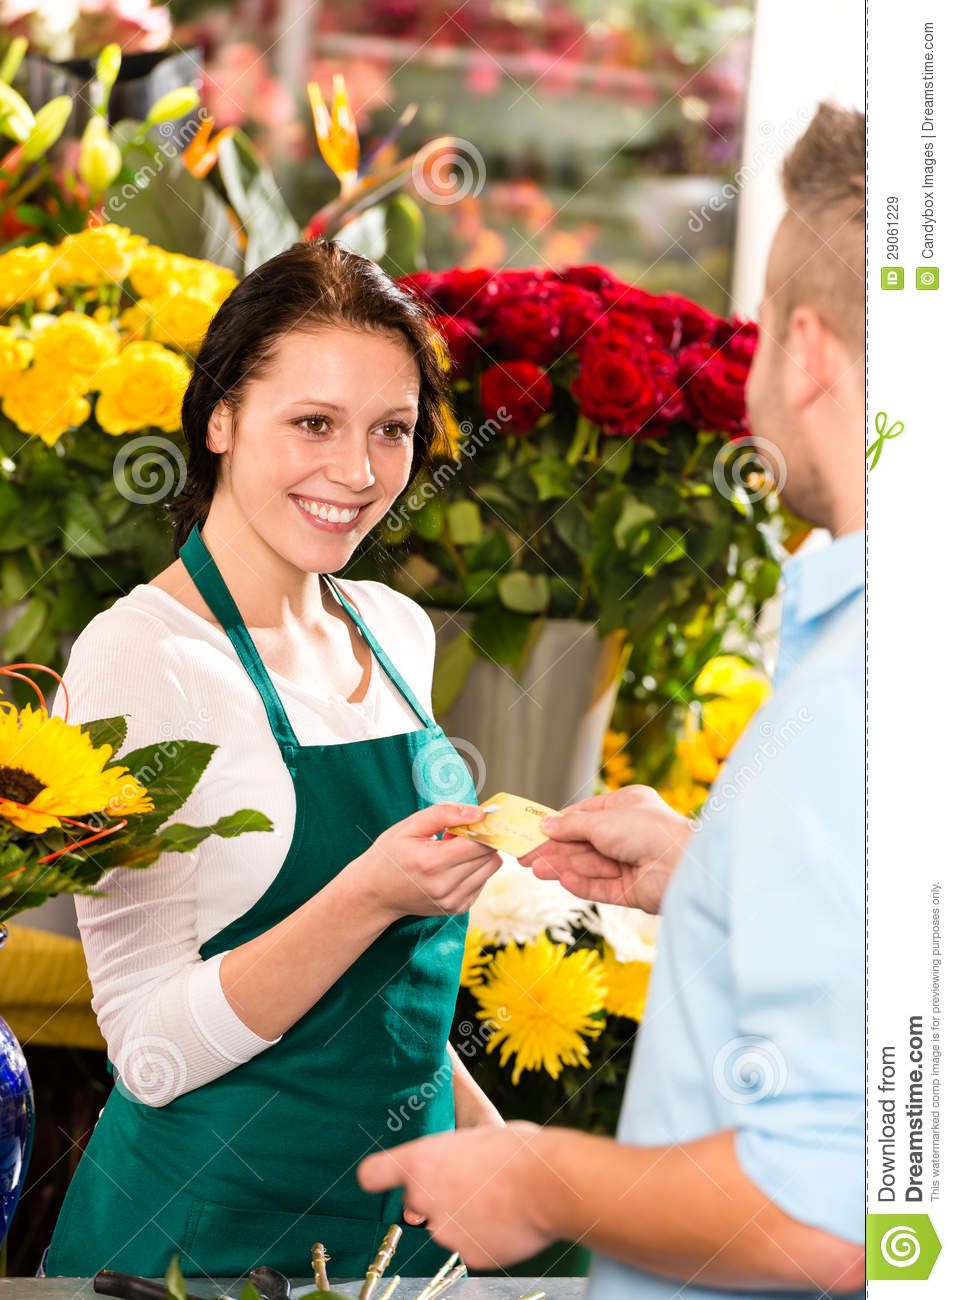 Buying A Full Face Snorkel Mask Reviews Of Full Face: Smiling Florist Man Customer Buying Flowers Card Royalty